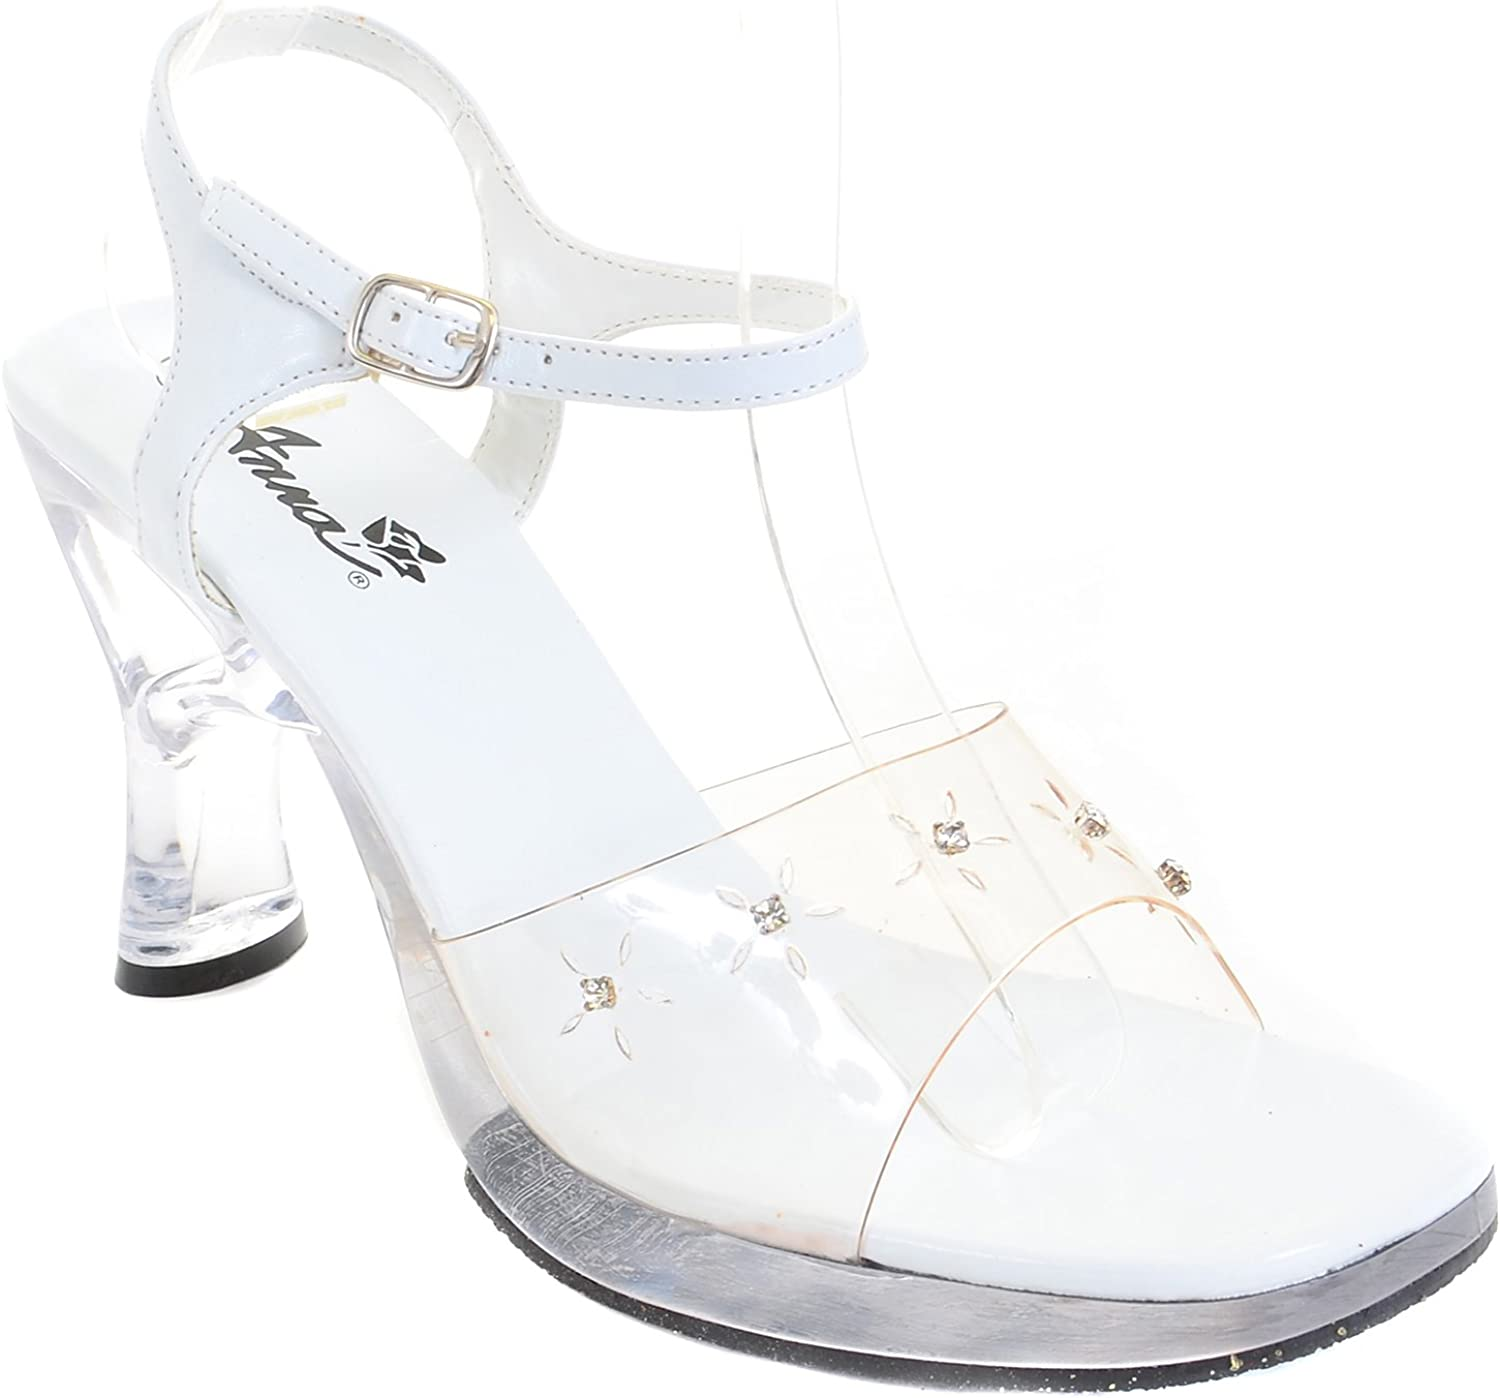 Fourever Funky Clear Rhinestone Heel White Sandal Women's Low Heels